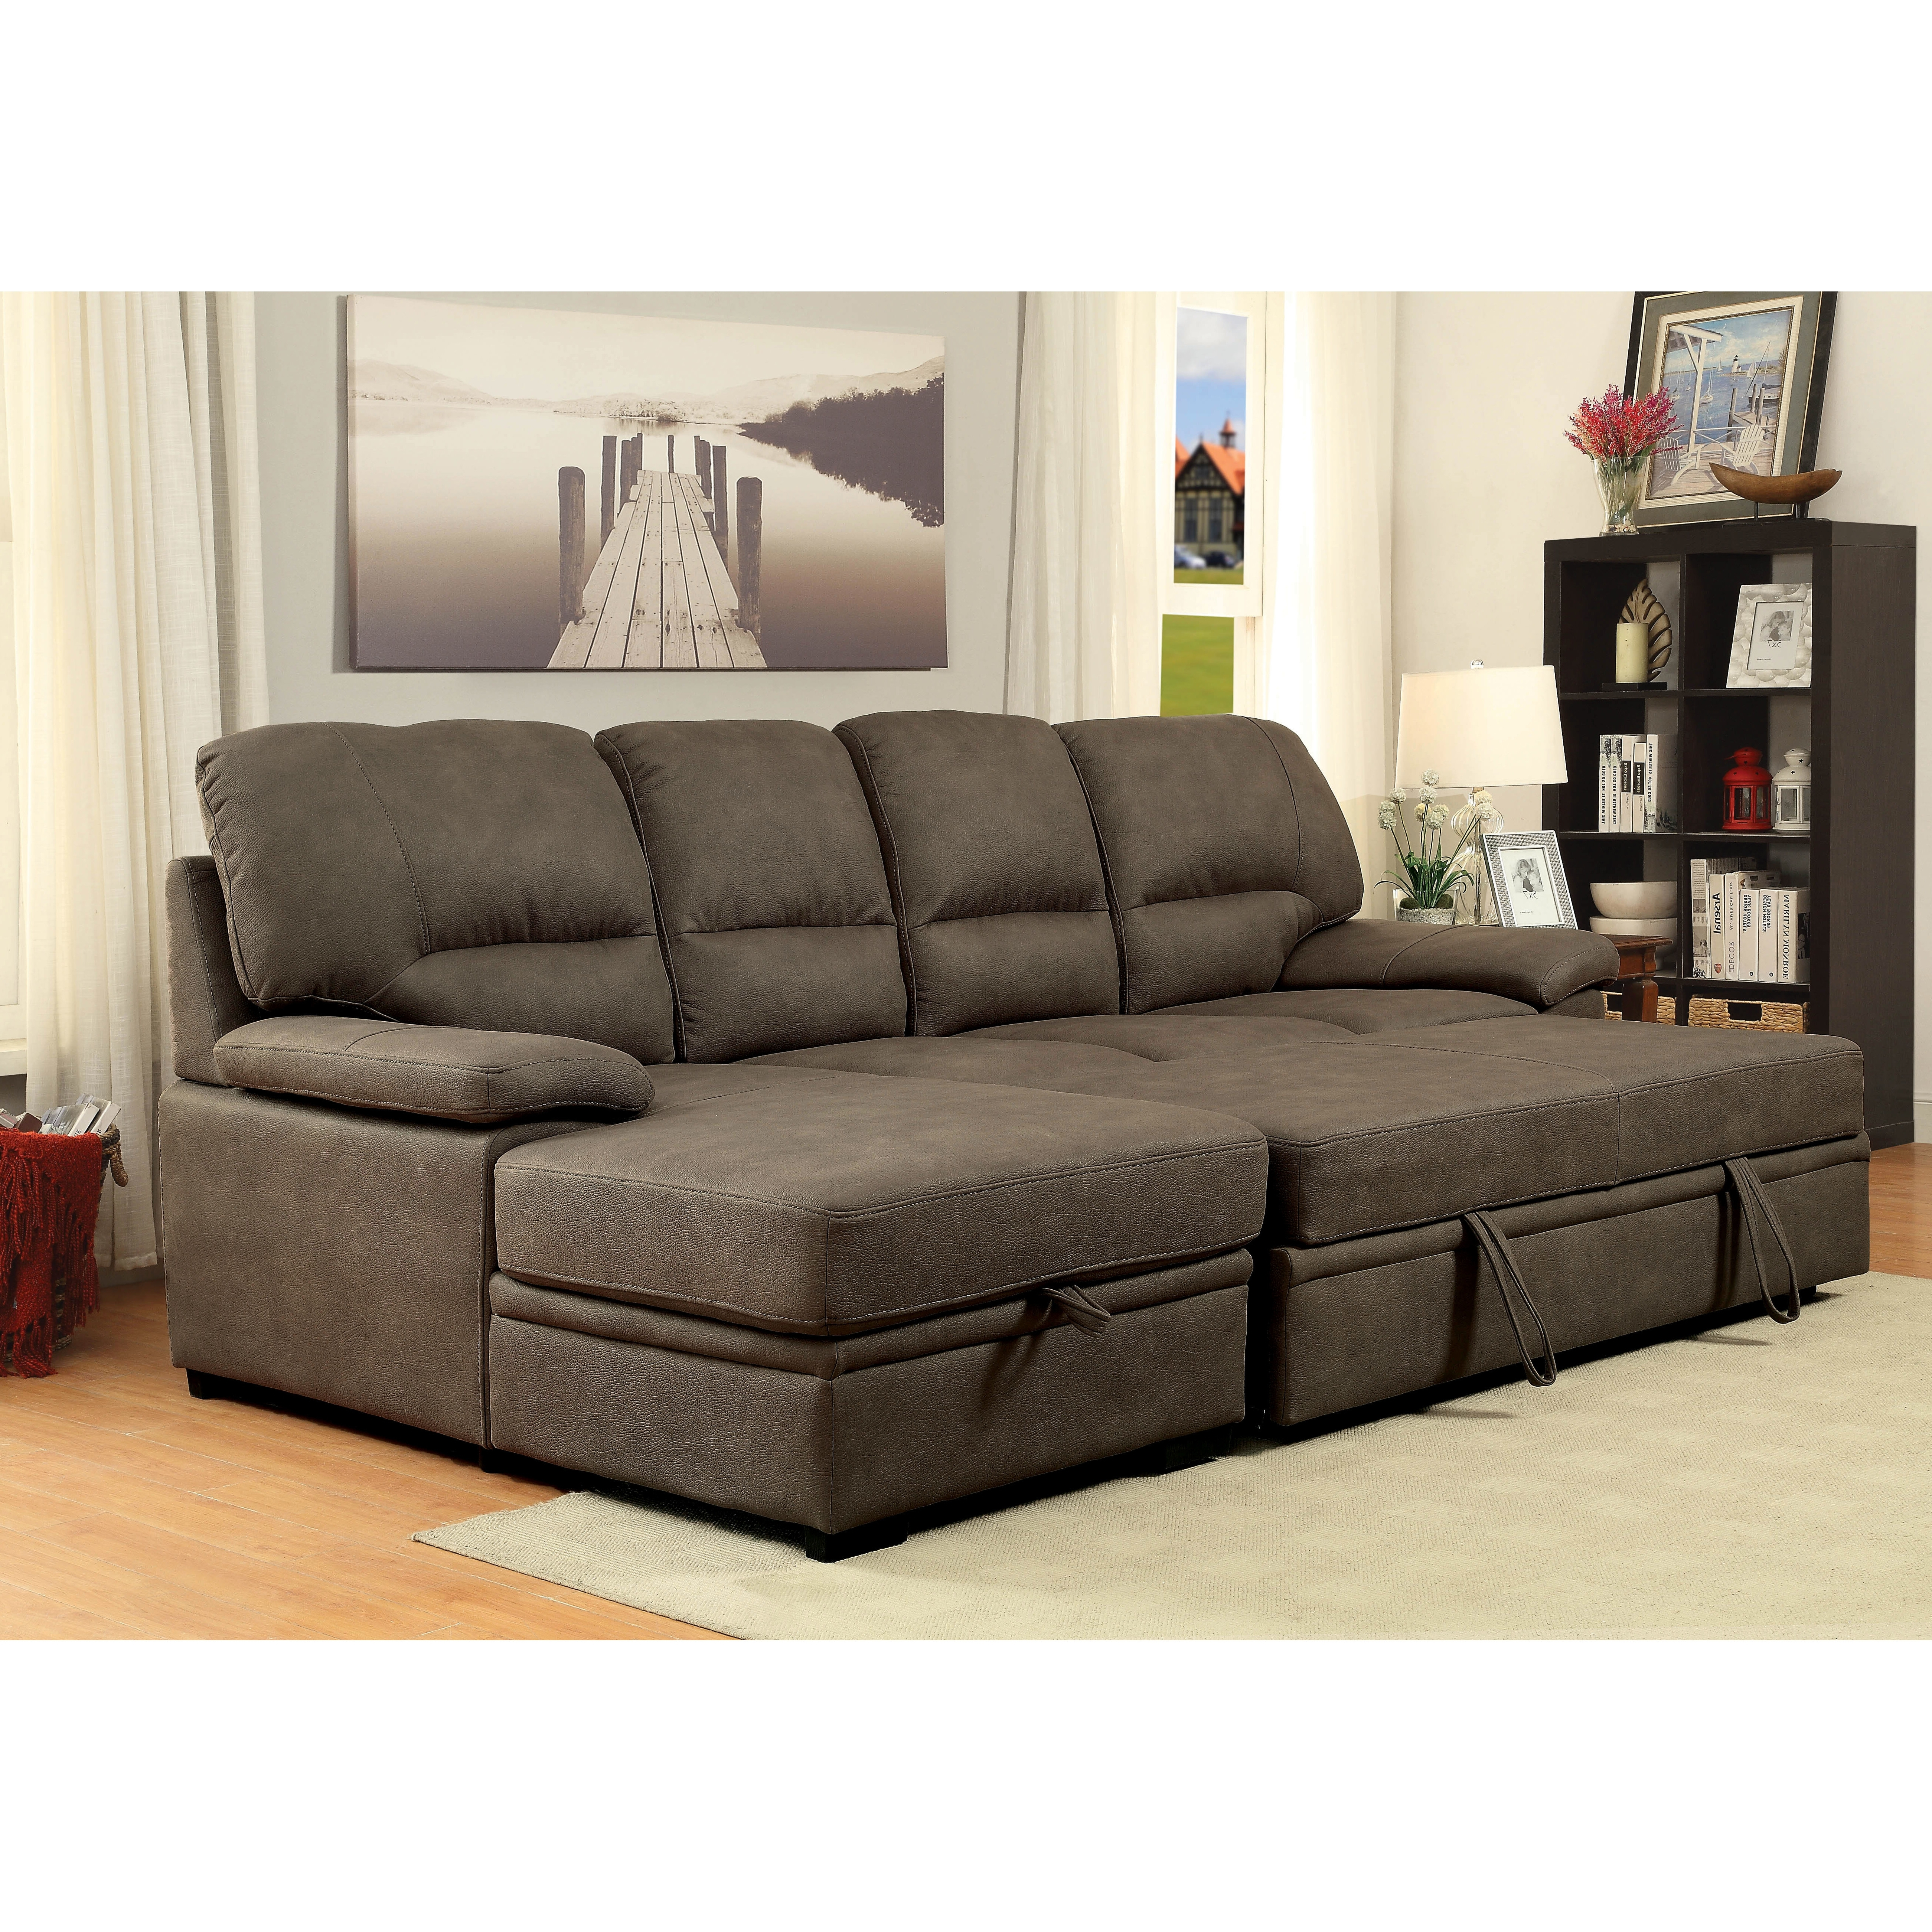 Sleeper Sectional Sofas Pertaining To Famous Attractive Sofa Sleeper Sectionals Coolest Home Design Ideas With (View 14 of 20)